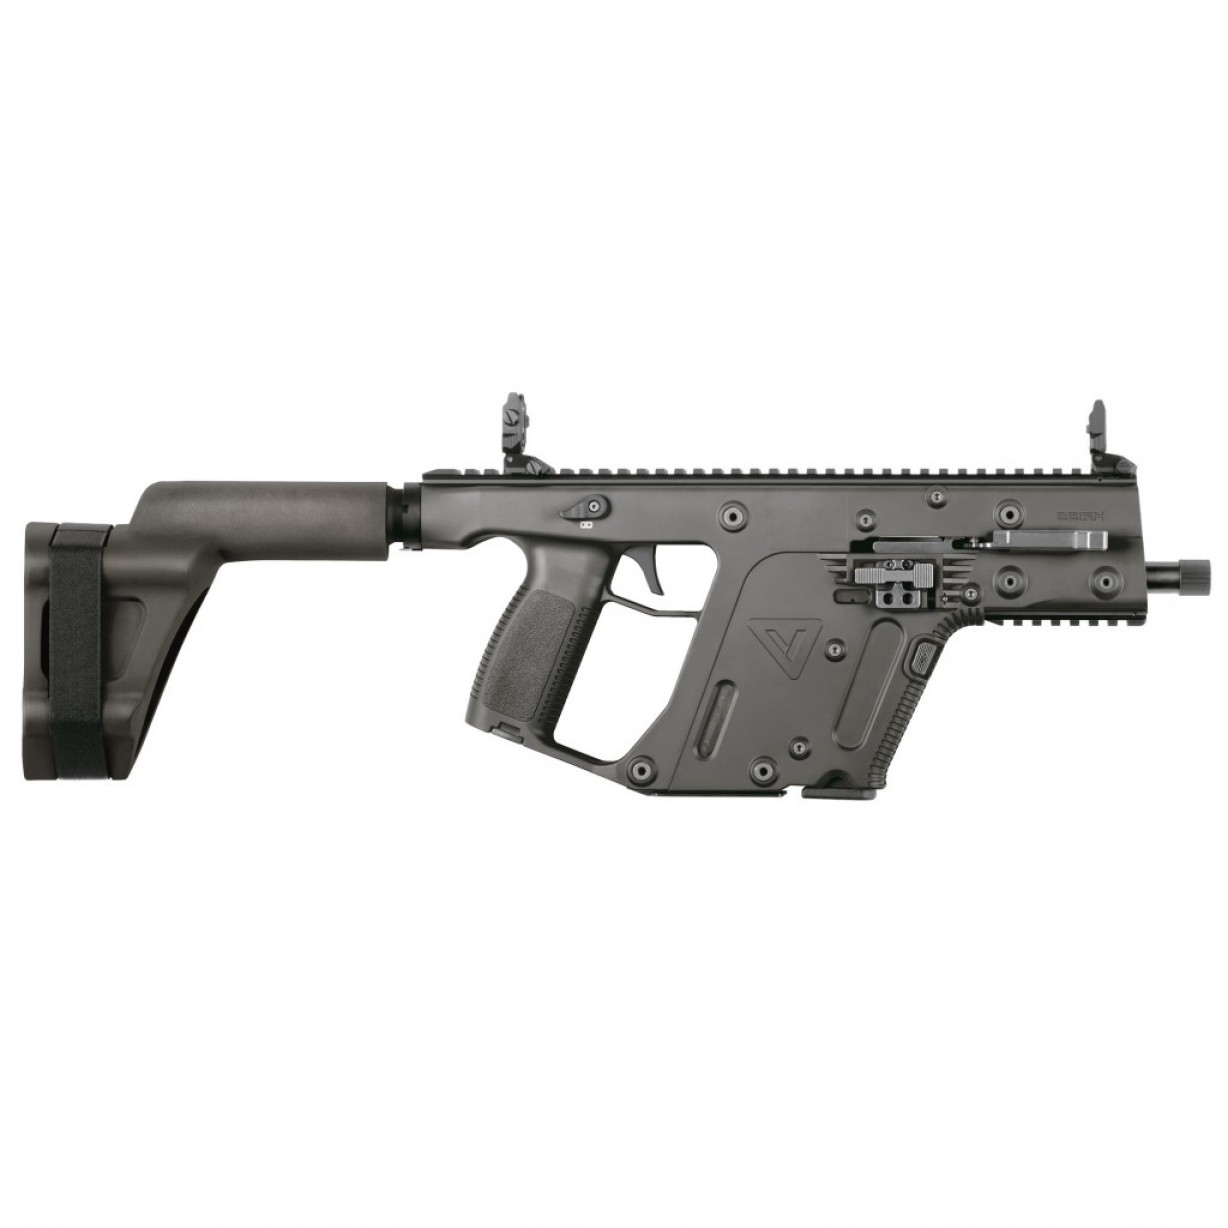 Kriss Vector Rear Grip: Kriss Vector Gen Ii Sdp With Brace Acp Vector Gen Ii Sdp With Brace Acp